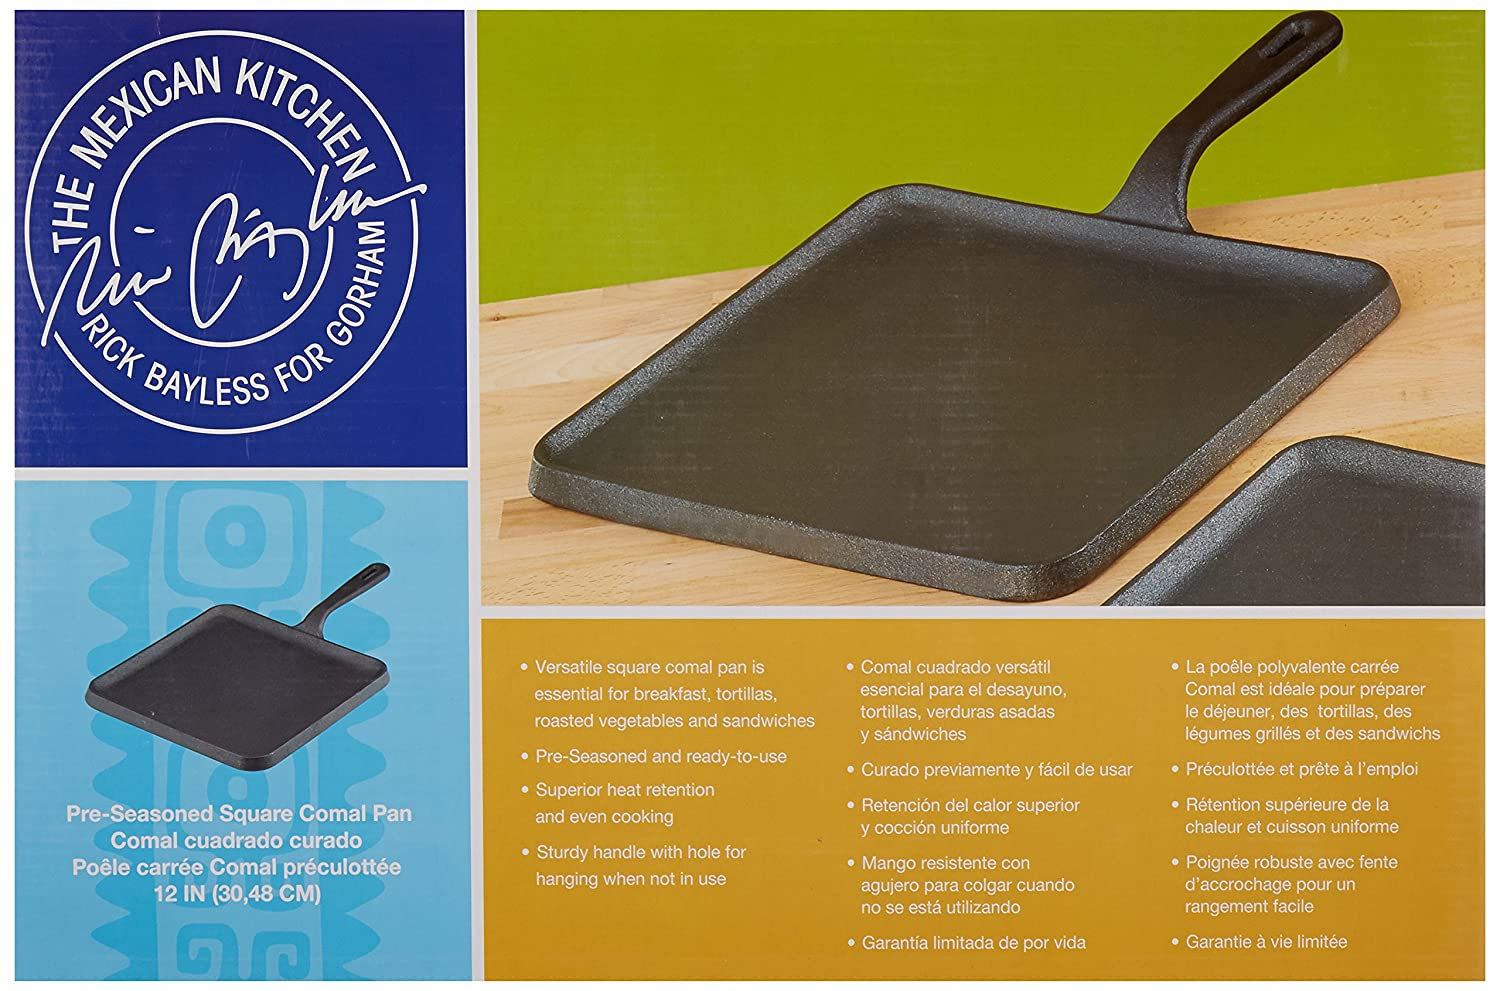 Amazon.com: The Mexican Kitchen by Rick Bayless 12-inch Cast Iron Square Comal Pan, Medium, Black: Kitchen & Dining